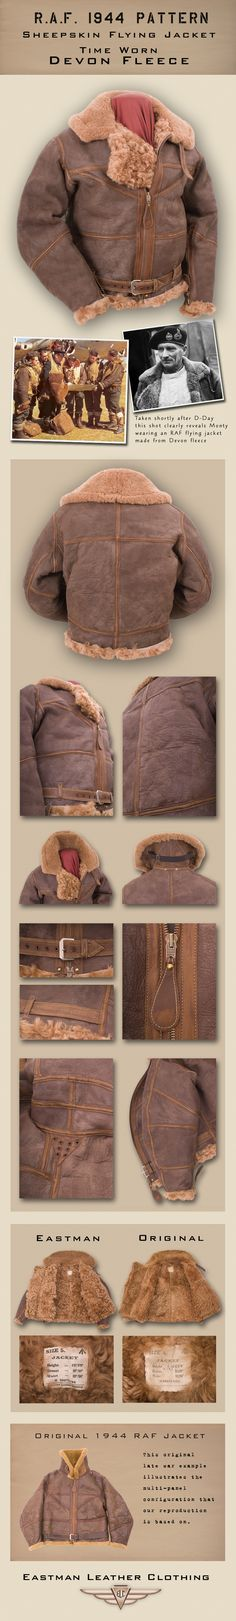 Well, the Scottish winter lasts for about 8 months.  EASTMAN RAF 1944 PATTERN IN DEVON FLEECE